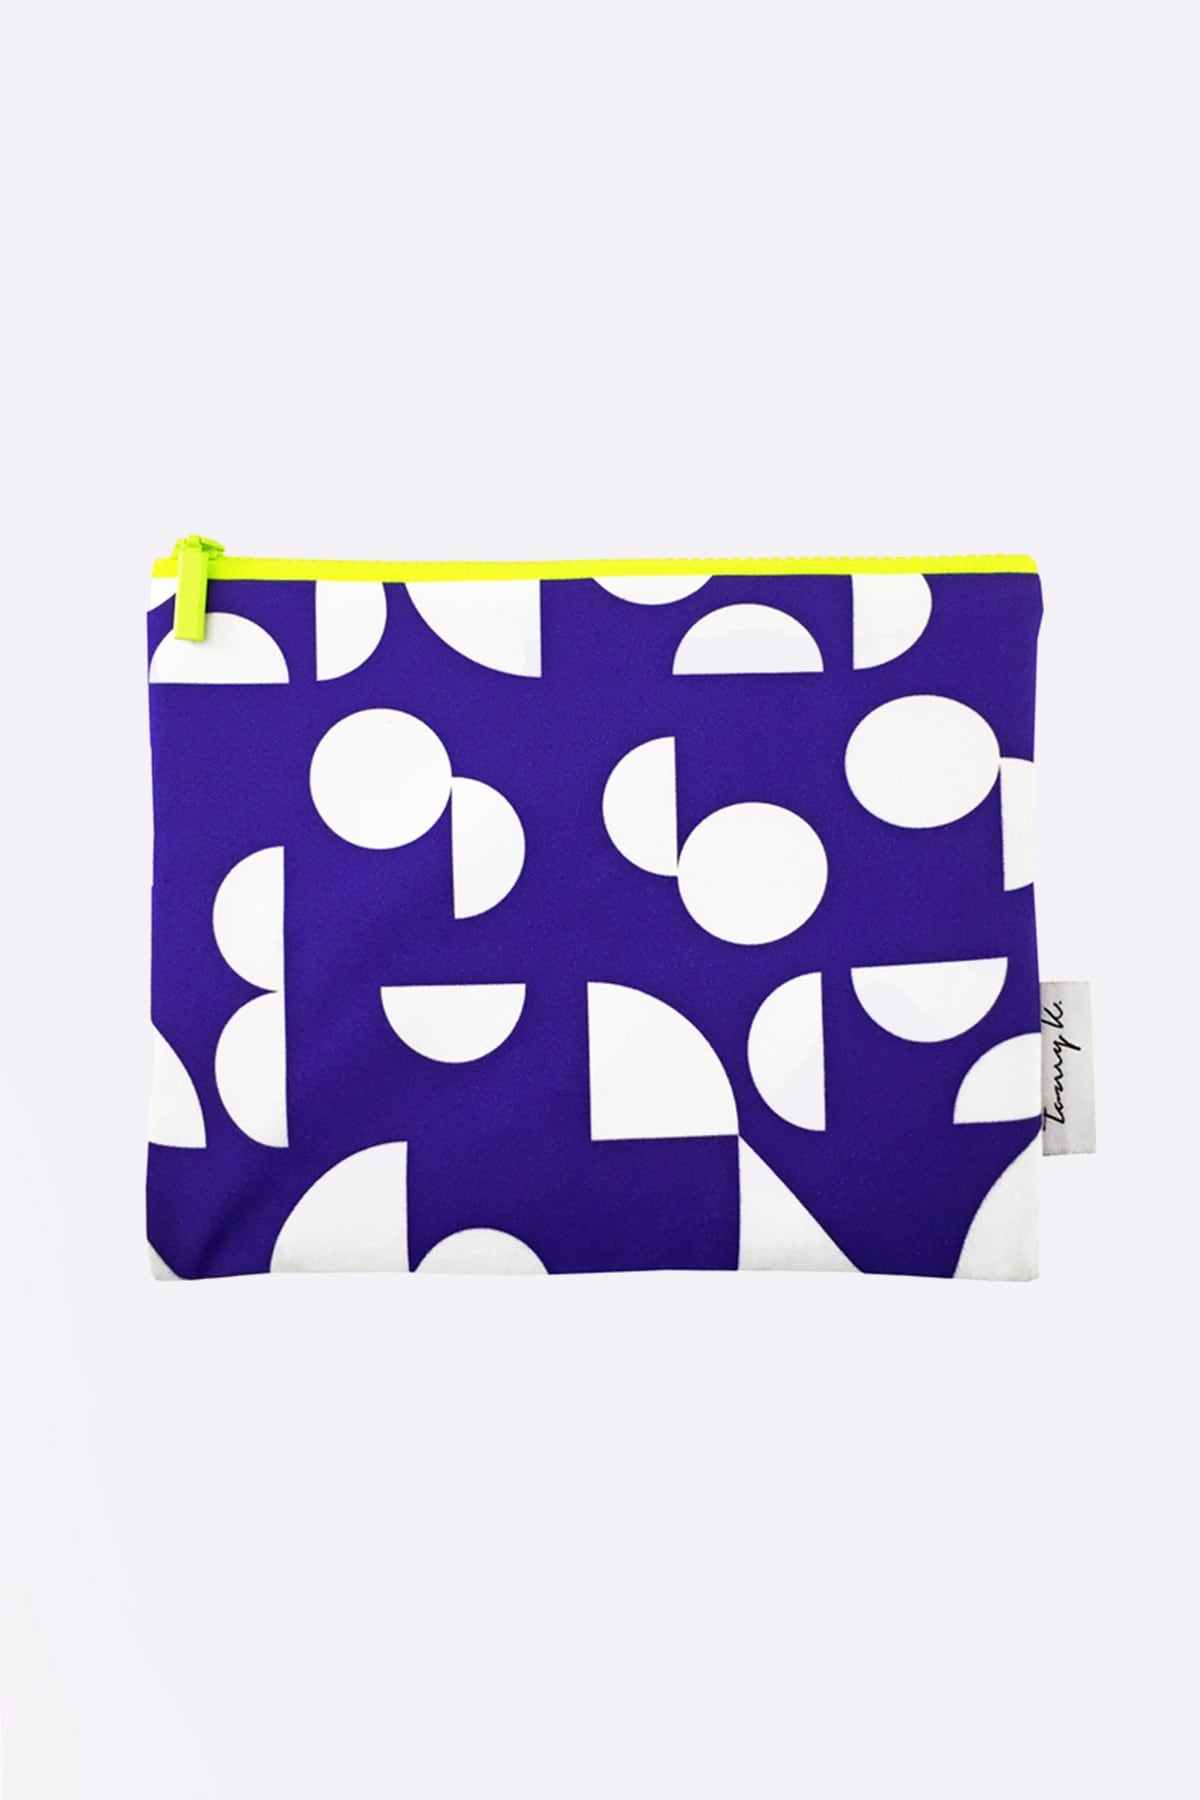 ARMONIA Blue pouch  i-pad case by Tomy K